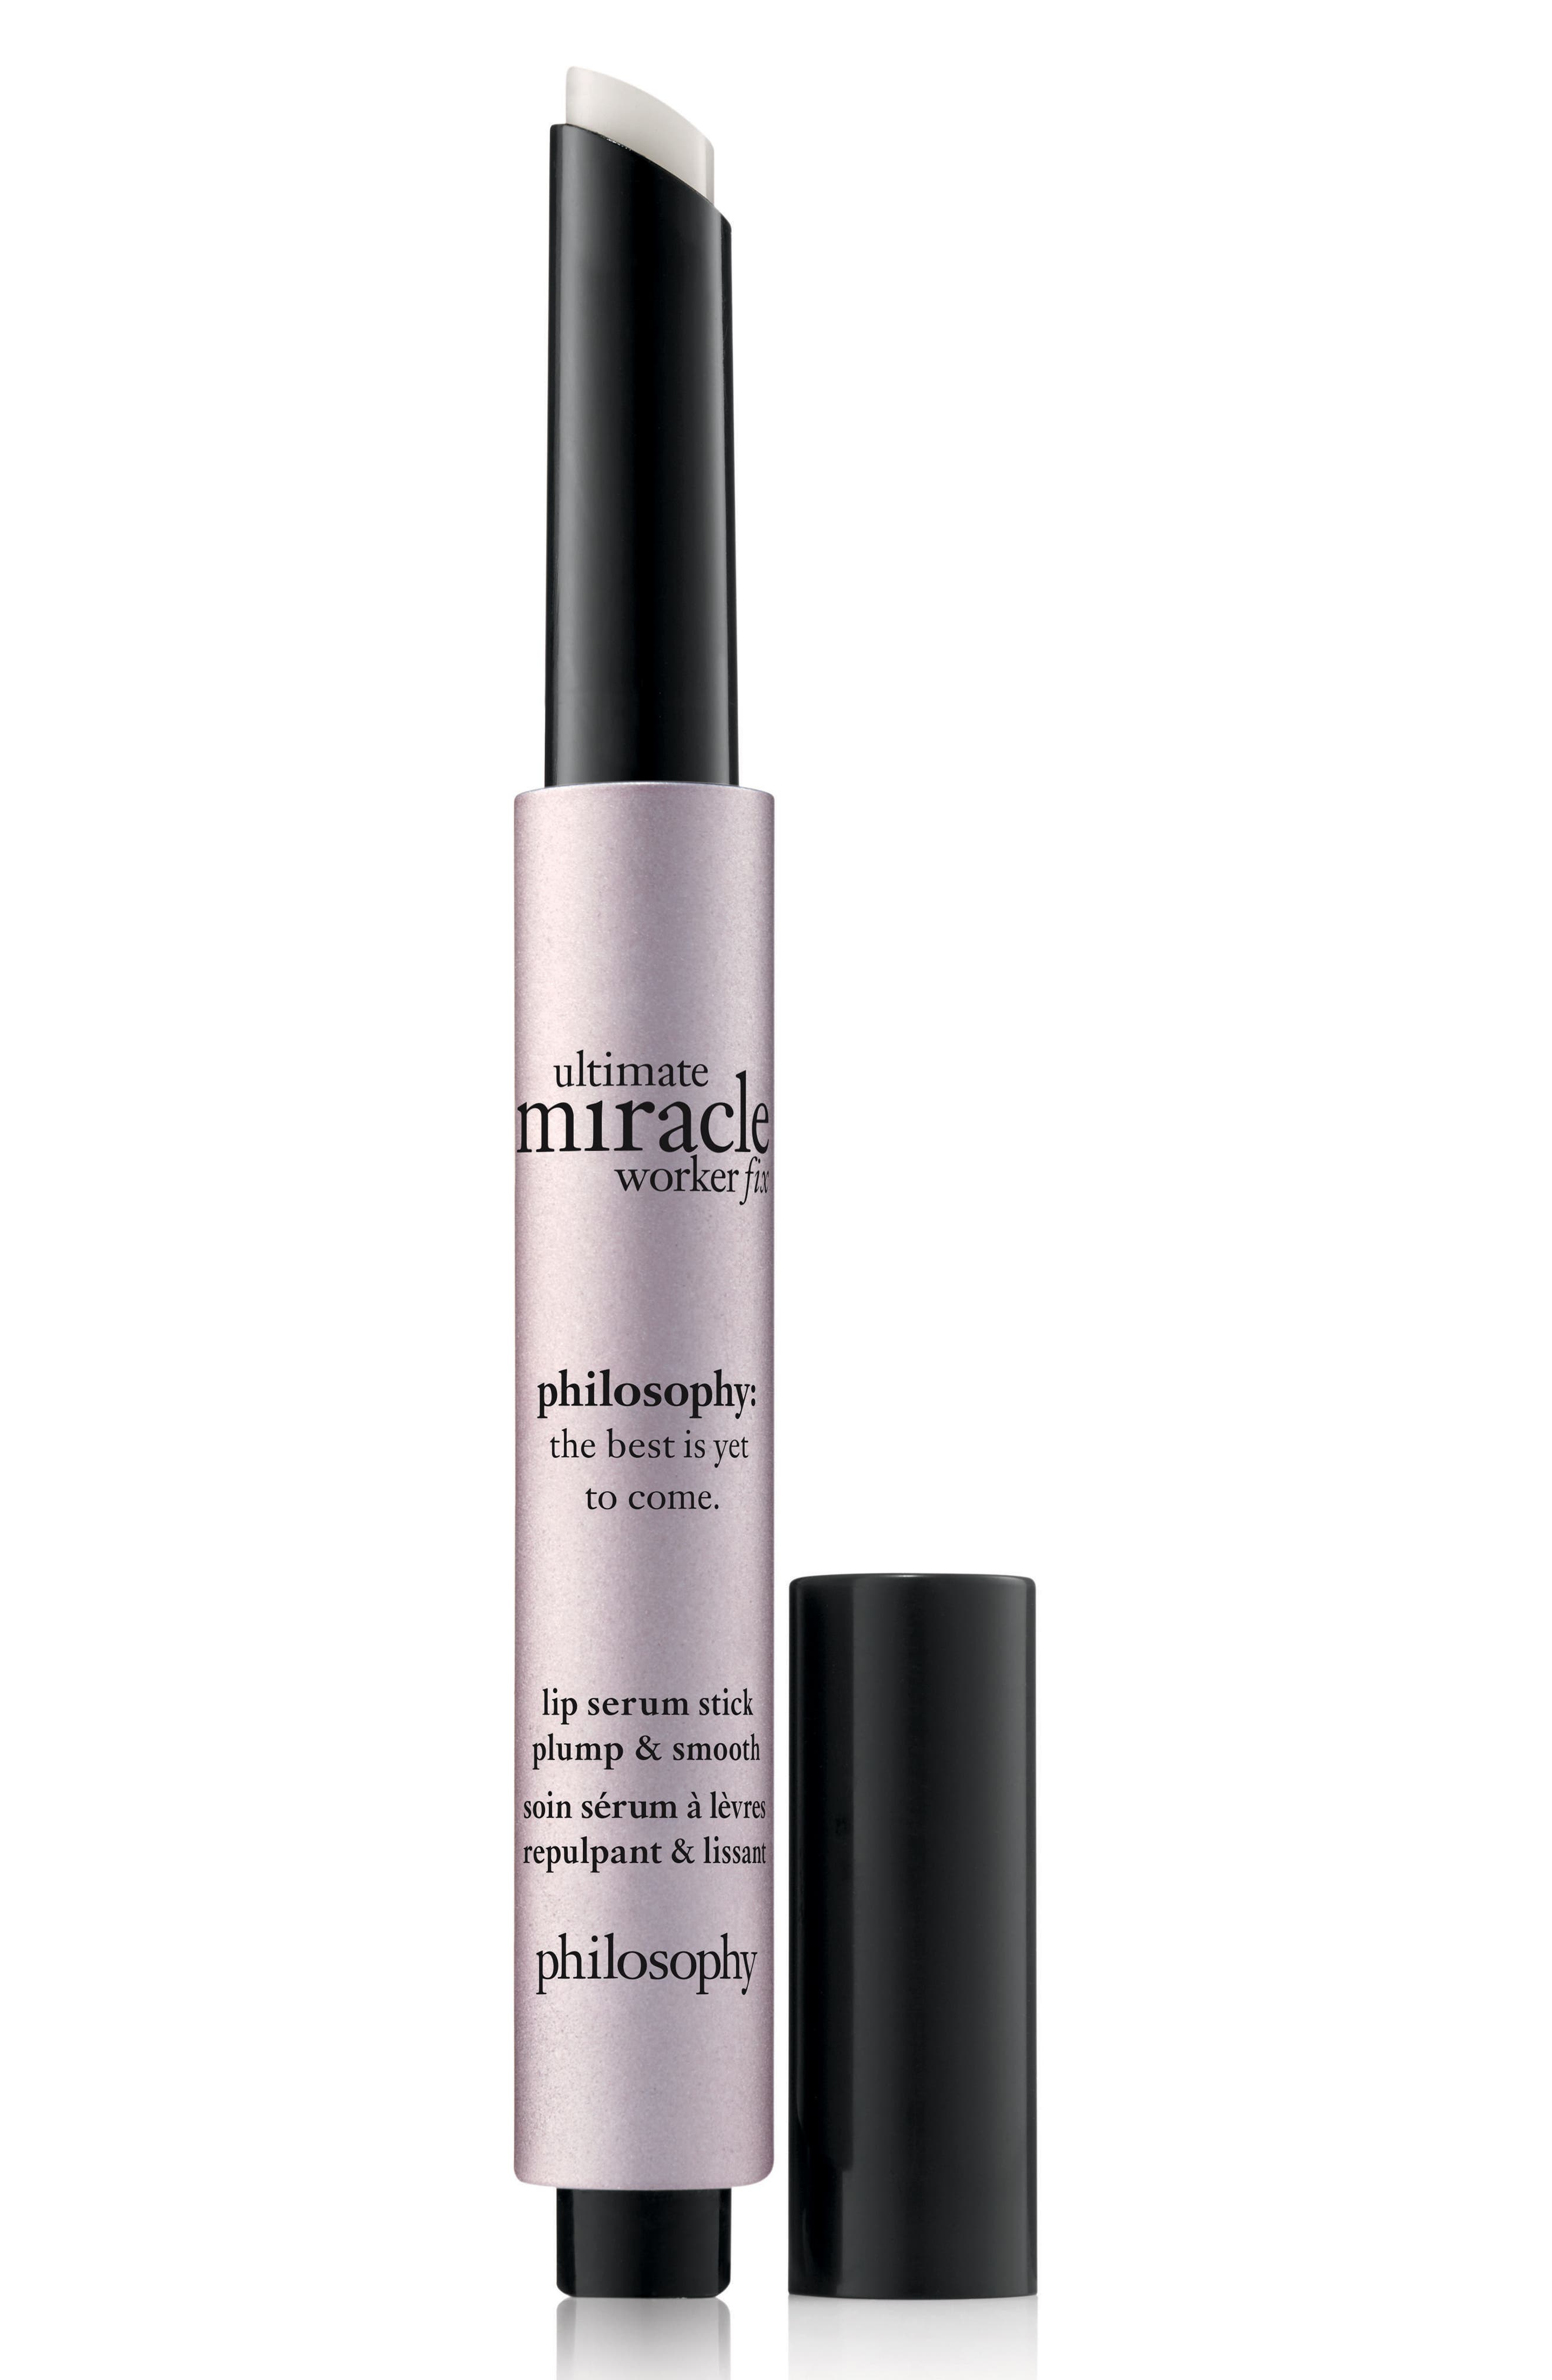 ultimate miracle worker lip fix,                             Alternate thumbnail 3, color,                             No Color